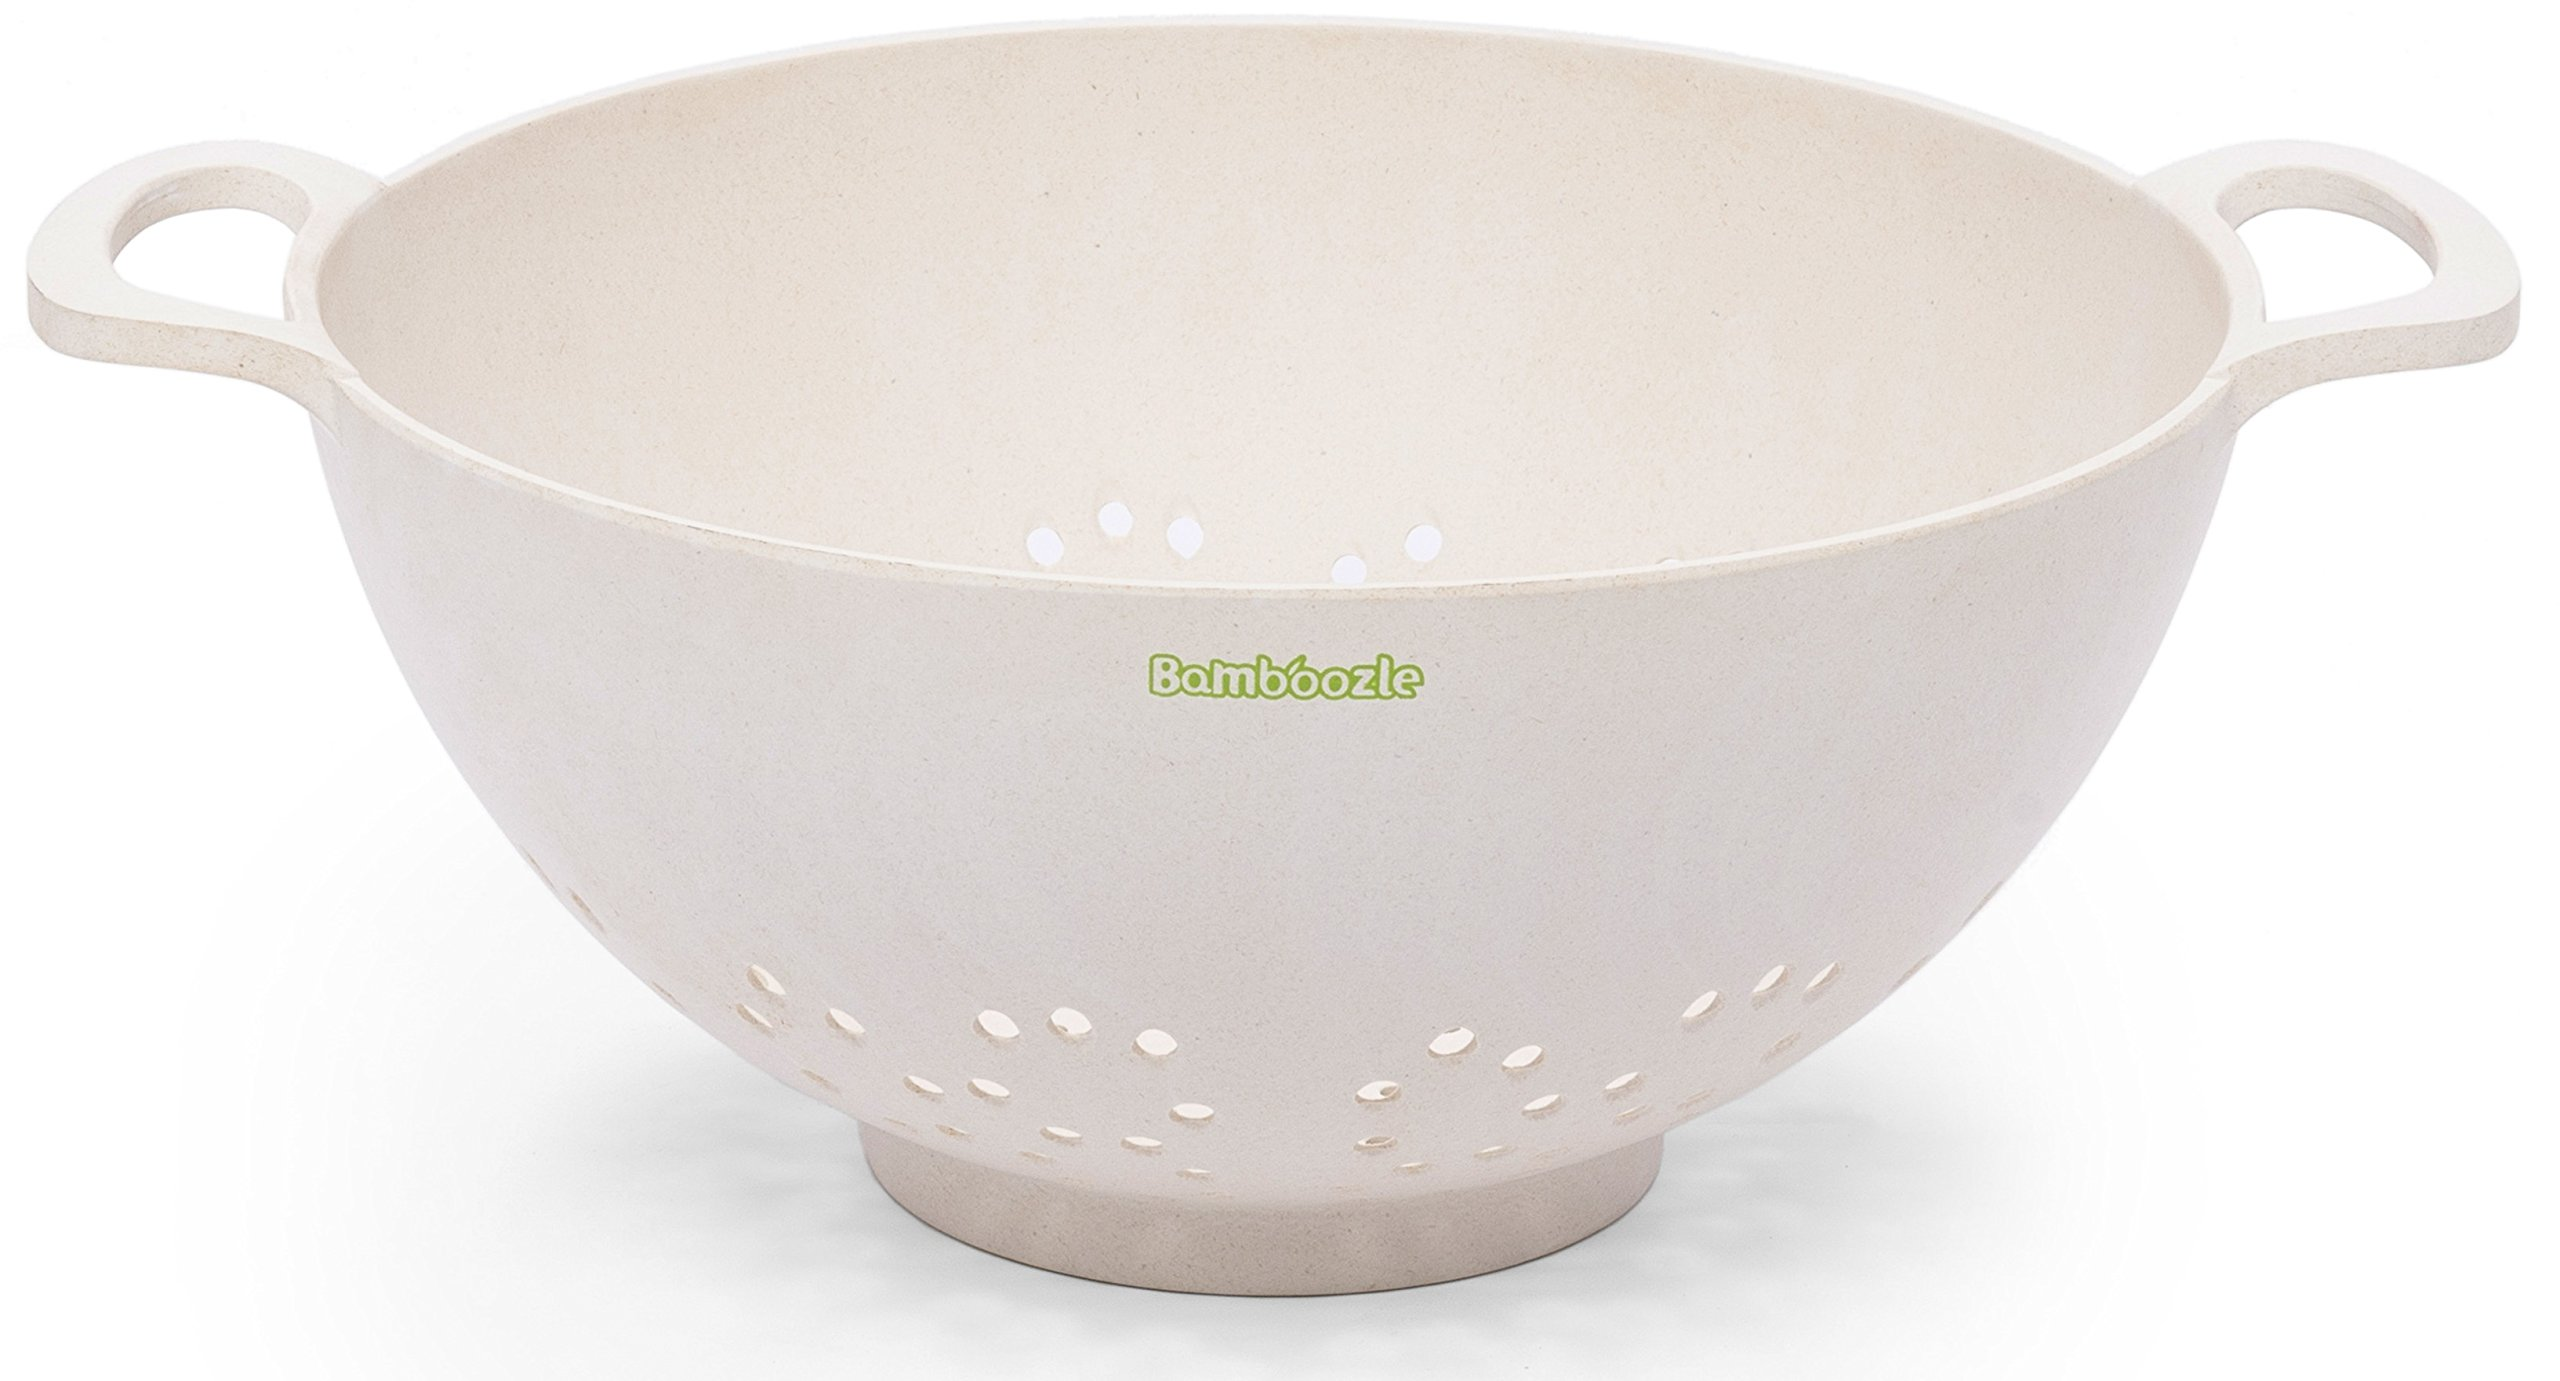 Bamboozle Colander with Handles, 9 1/4'', Natural by Bamboozle